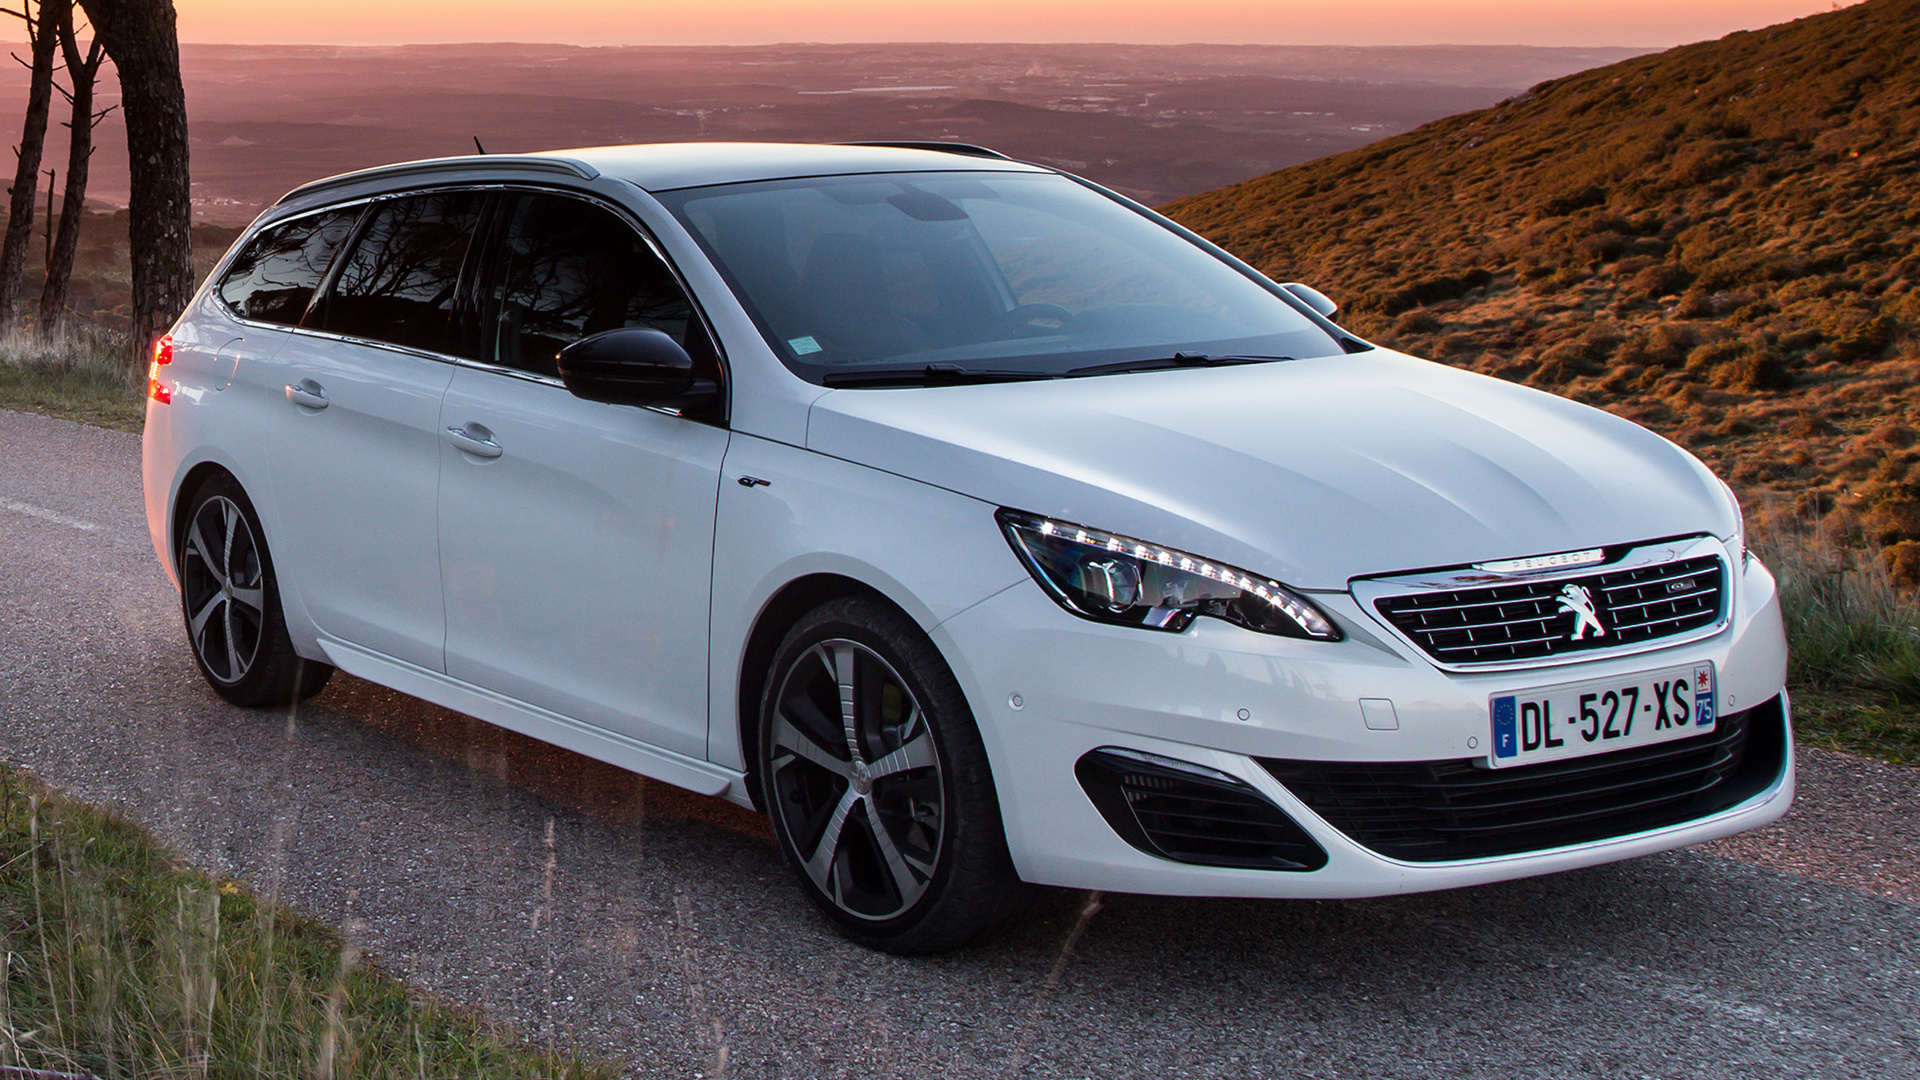 Peugeot 308 GT SW (2014) Wallpapers and HD Images - Car Pixel